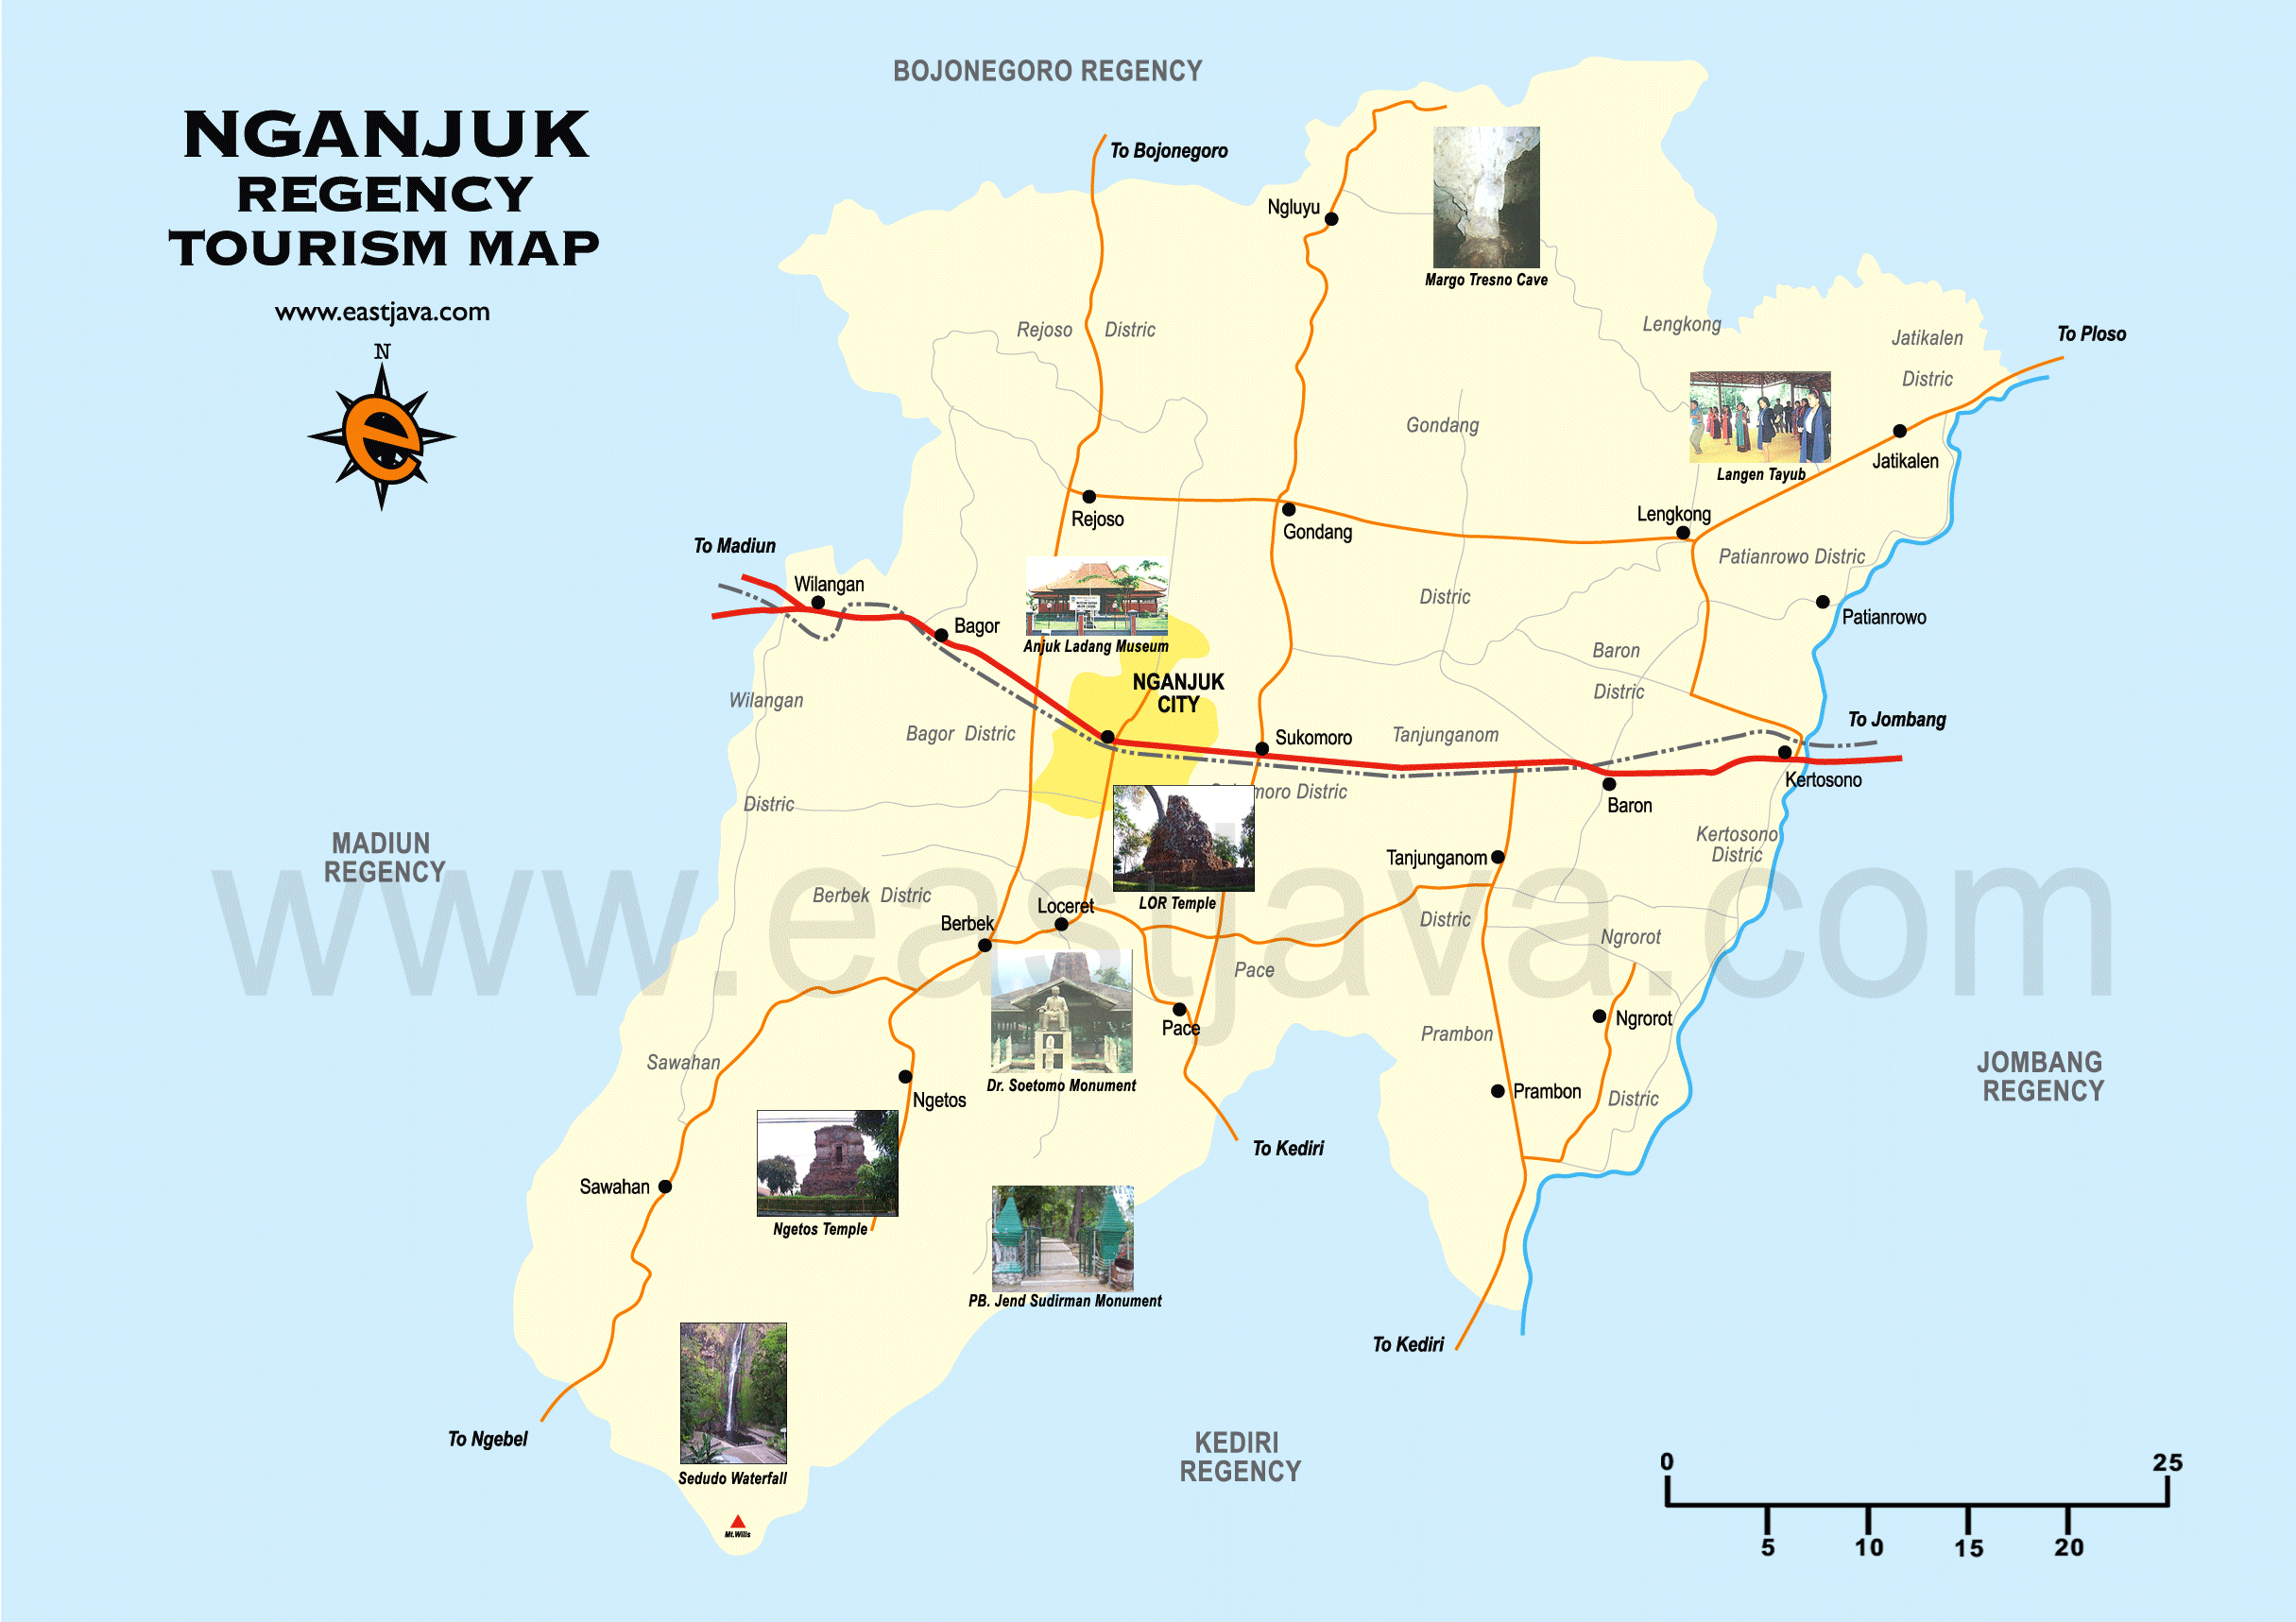 Nganjuk Map Peta Tourism Google Taman Air Legend Kab